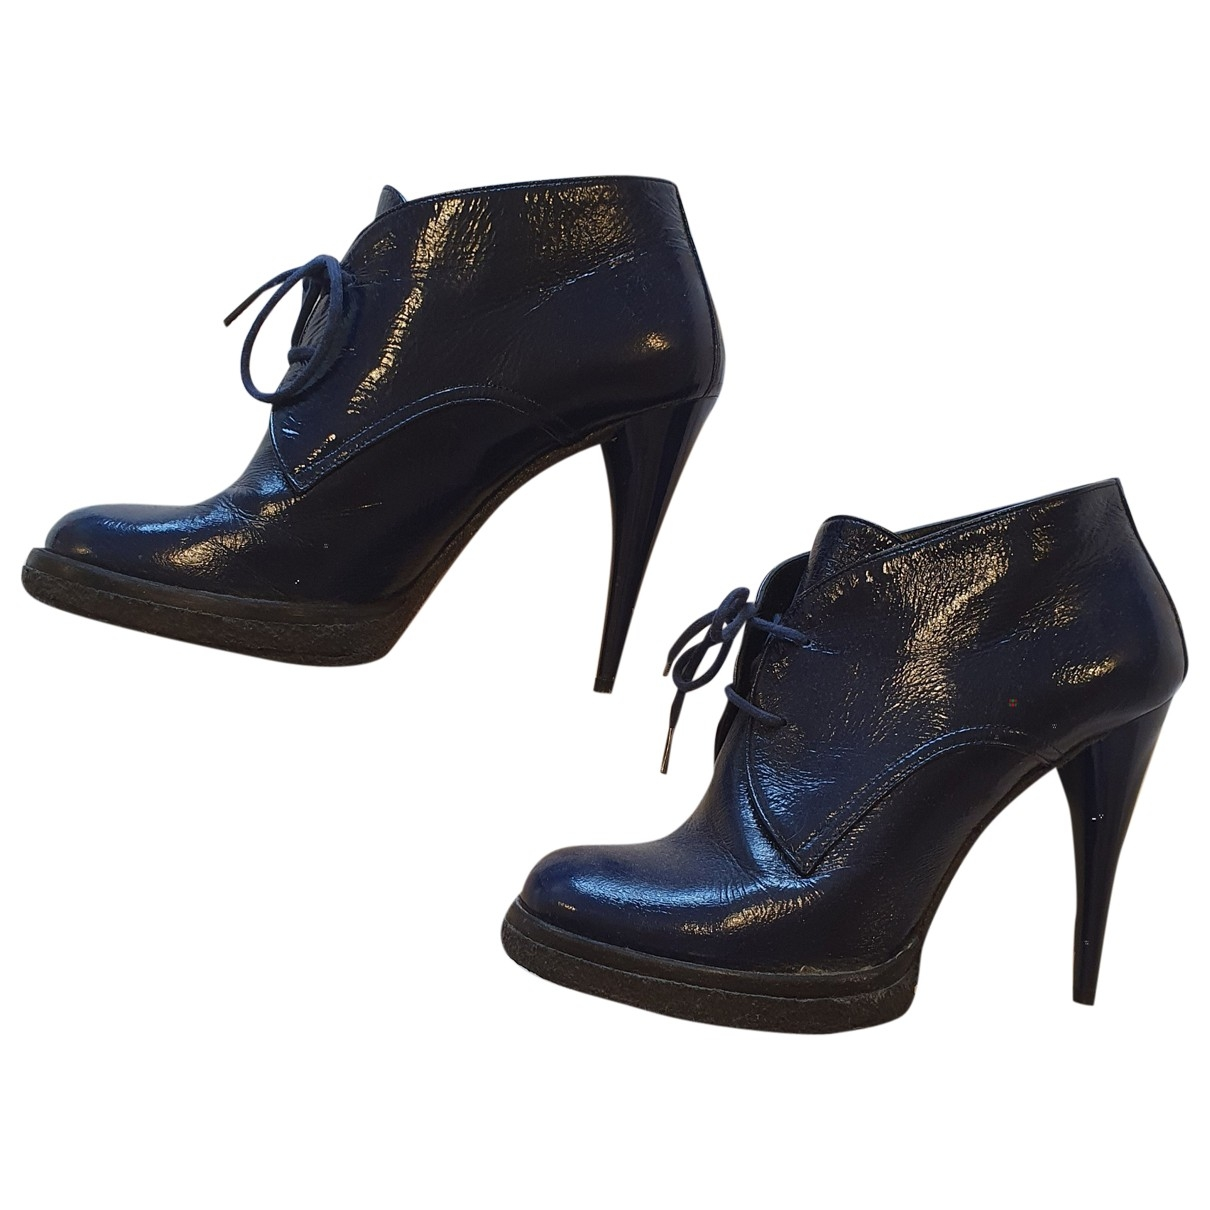 Balenciaga \N Blue Patent leather Ankle boots for Women 37 EU